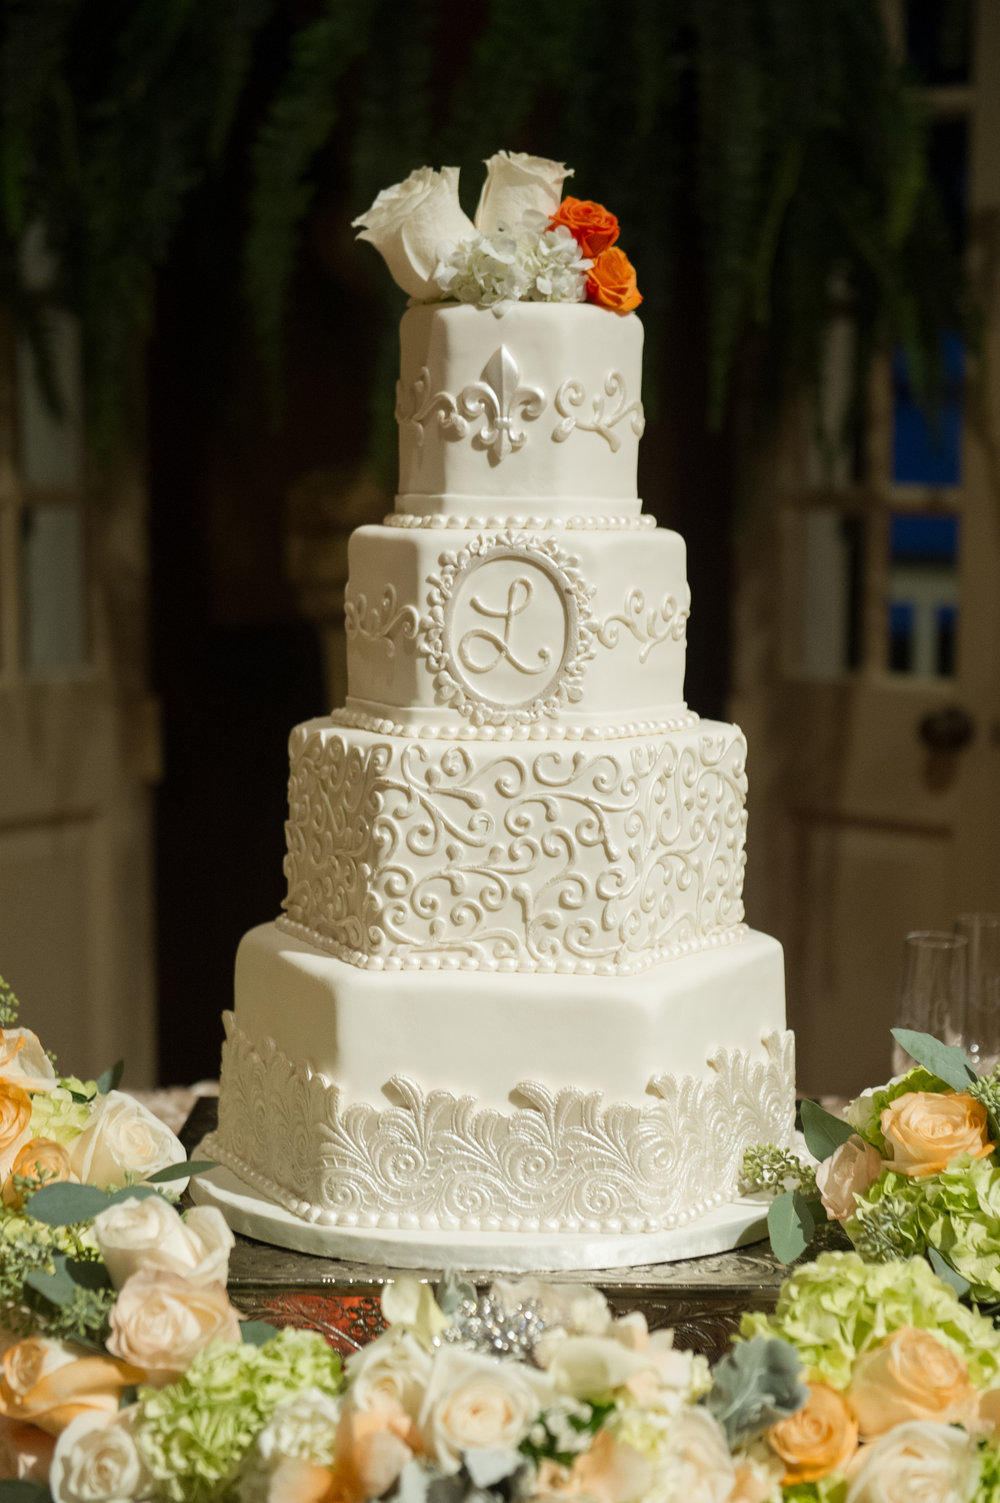 WeddingCake+4tier+FleurDeLis+Flourish.jpg